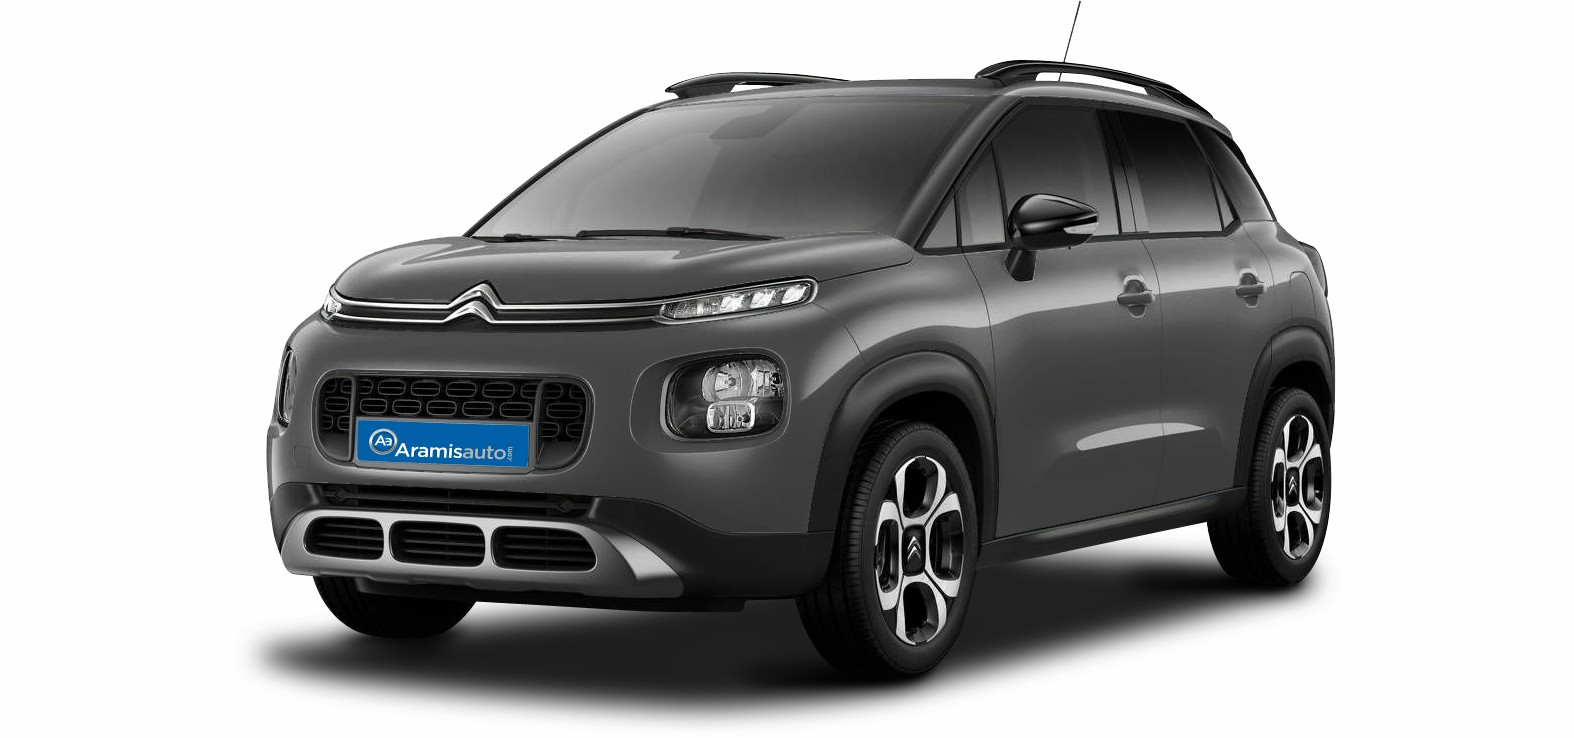 citroen c4 aircross boite automatique prix vente voiture s n gal citadine occasion citro n c4. Black Bedroom Furniture Sets. Home Design Ideas